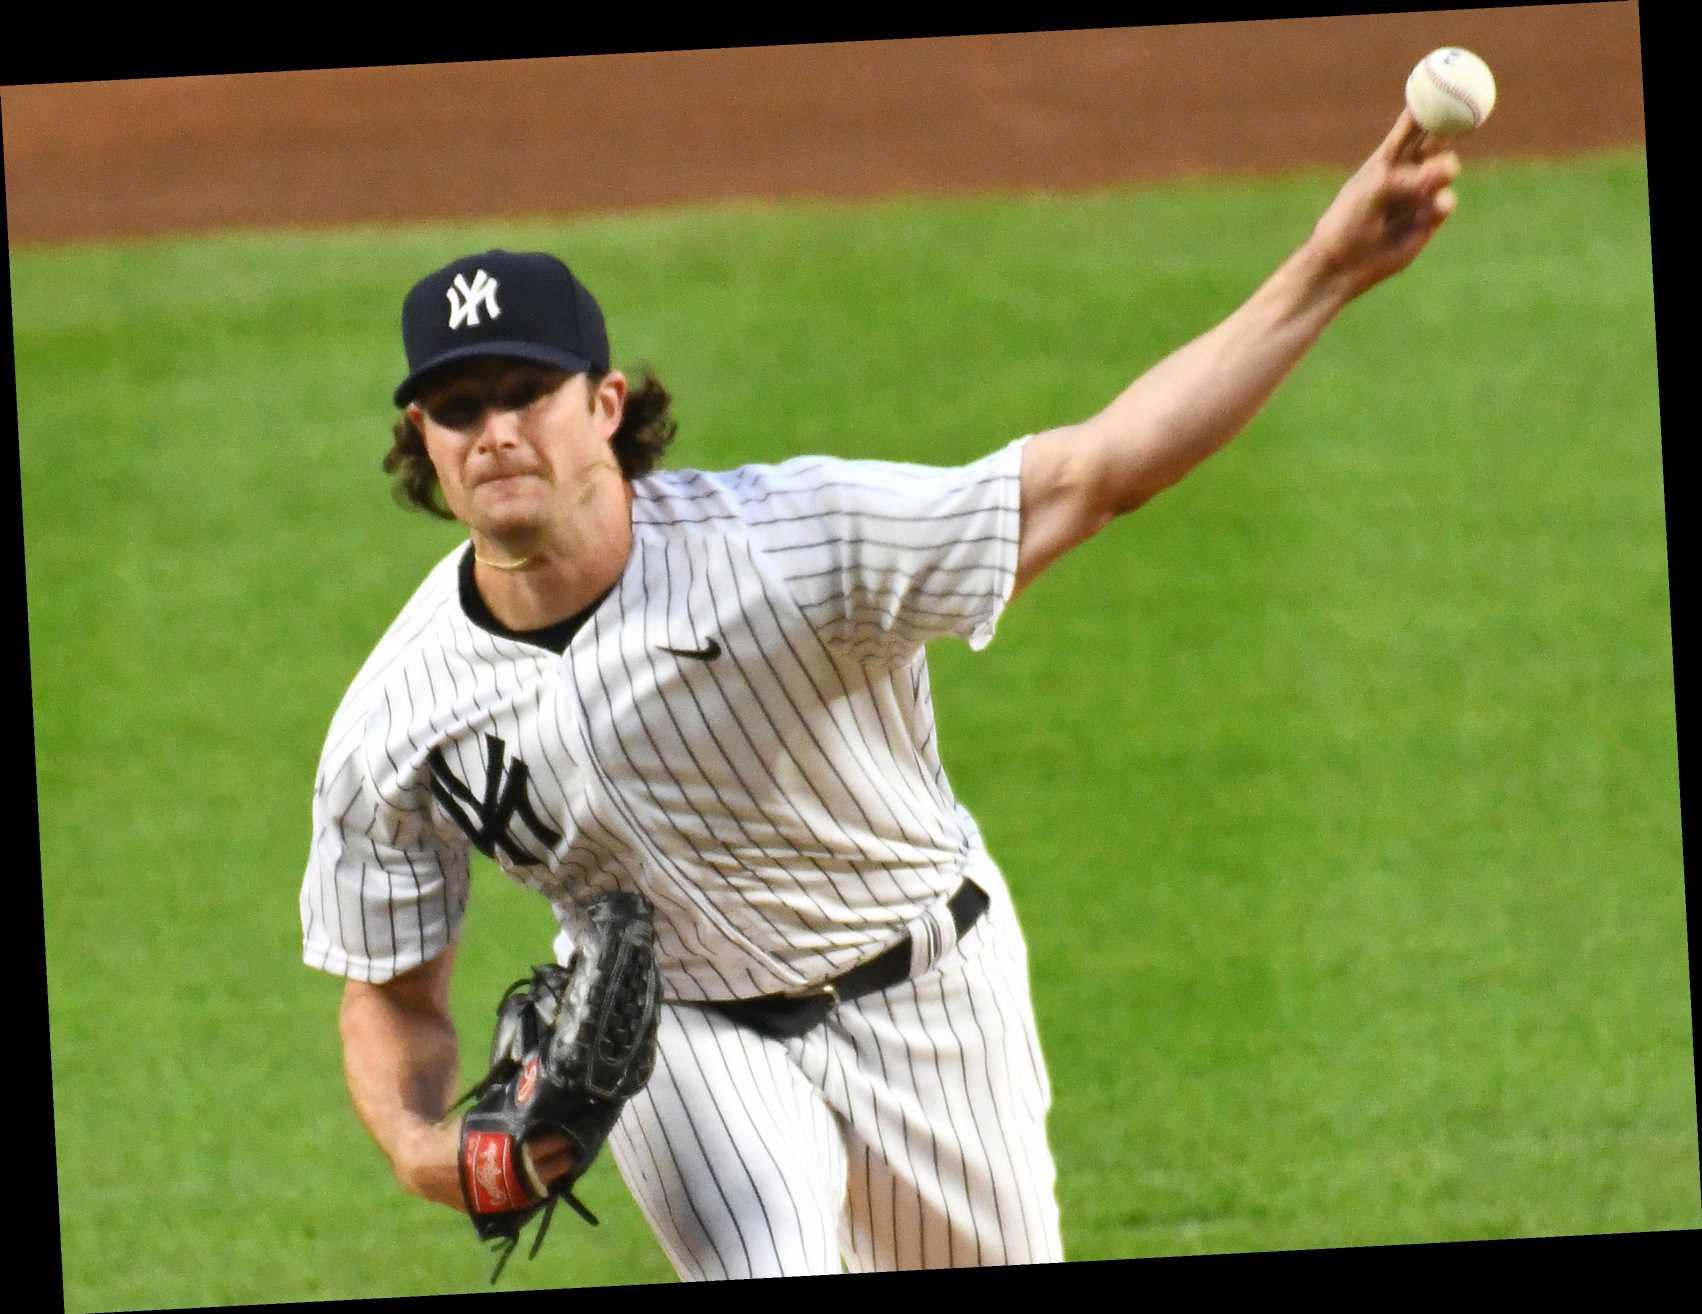 Gerrit Cole's fastball issue making Yankees' rebound more challenging